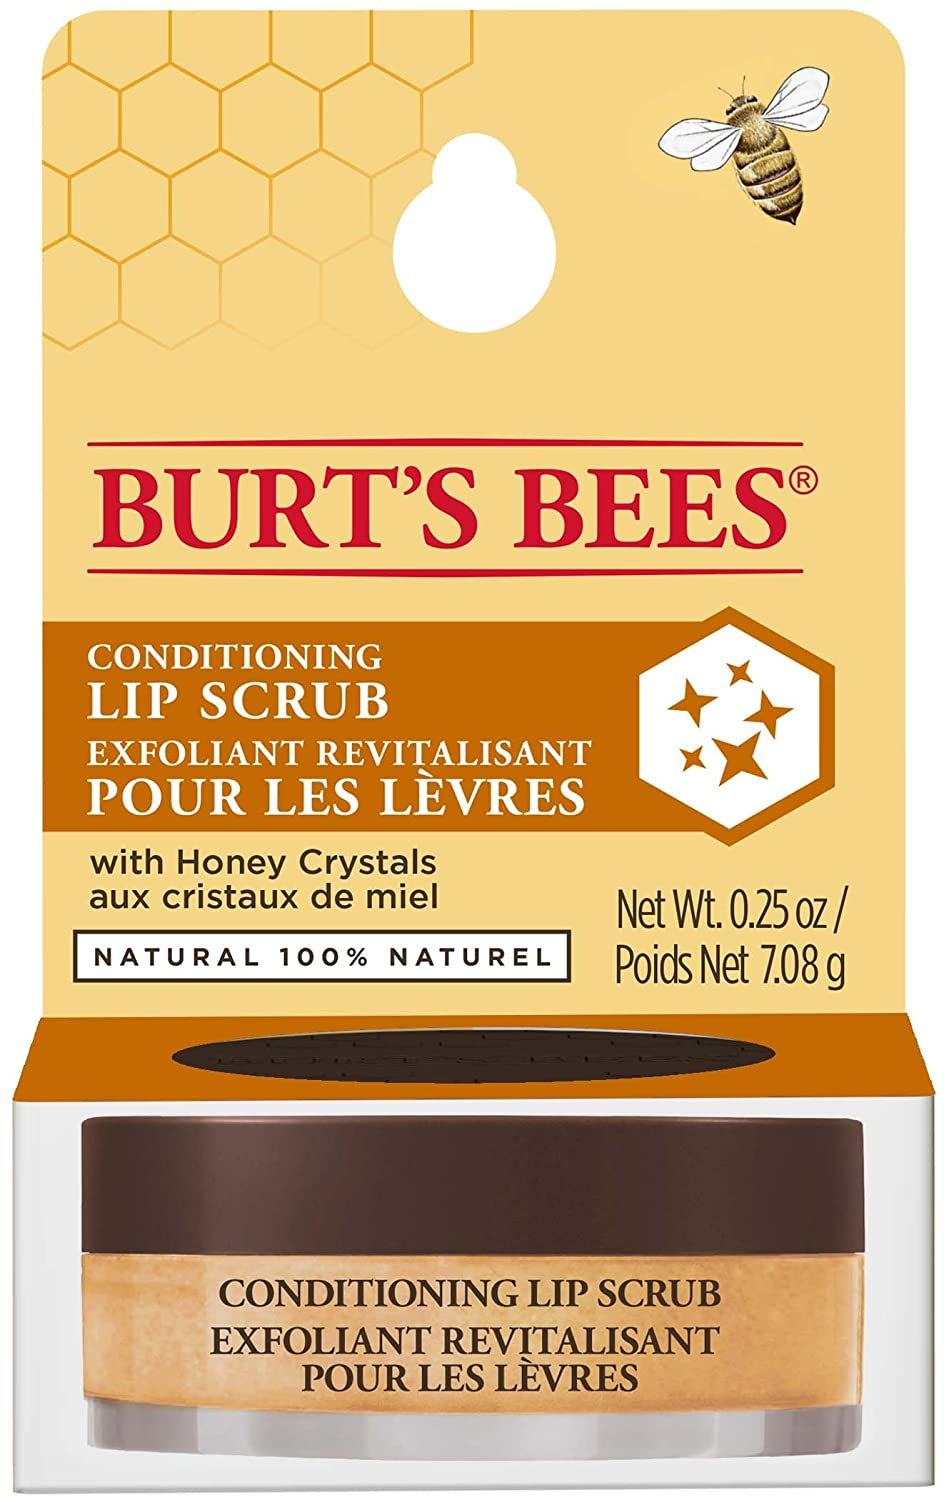 Burt's Bees 100 Percentage Natural Conditioning Lip Scrub with Exfoliating Honey Crystals, 7.08 g Burt's Bees 90213-14